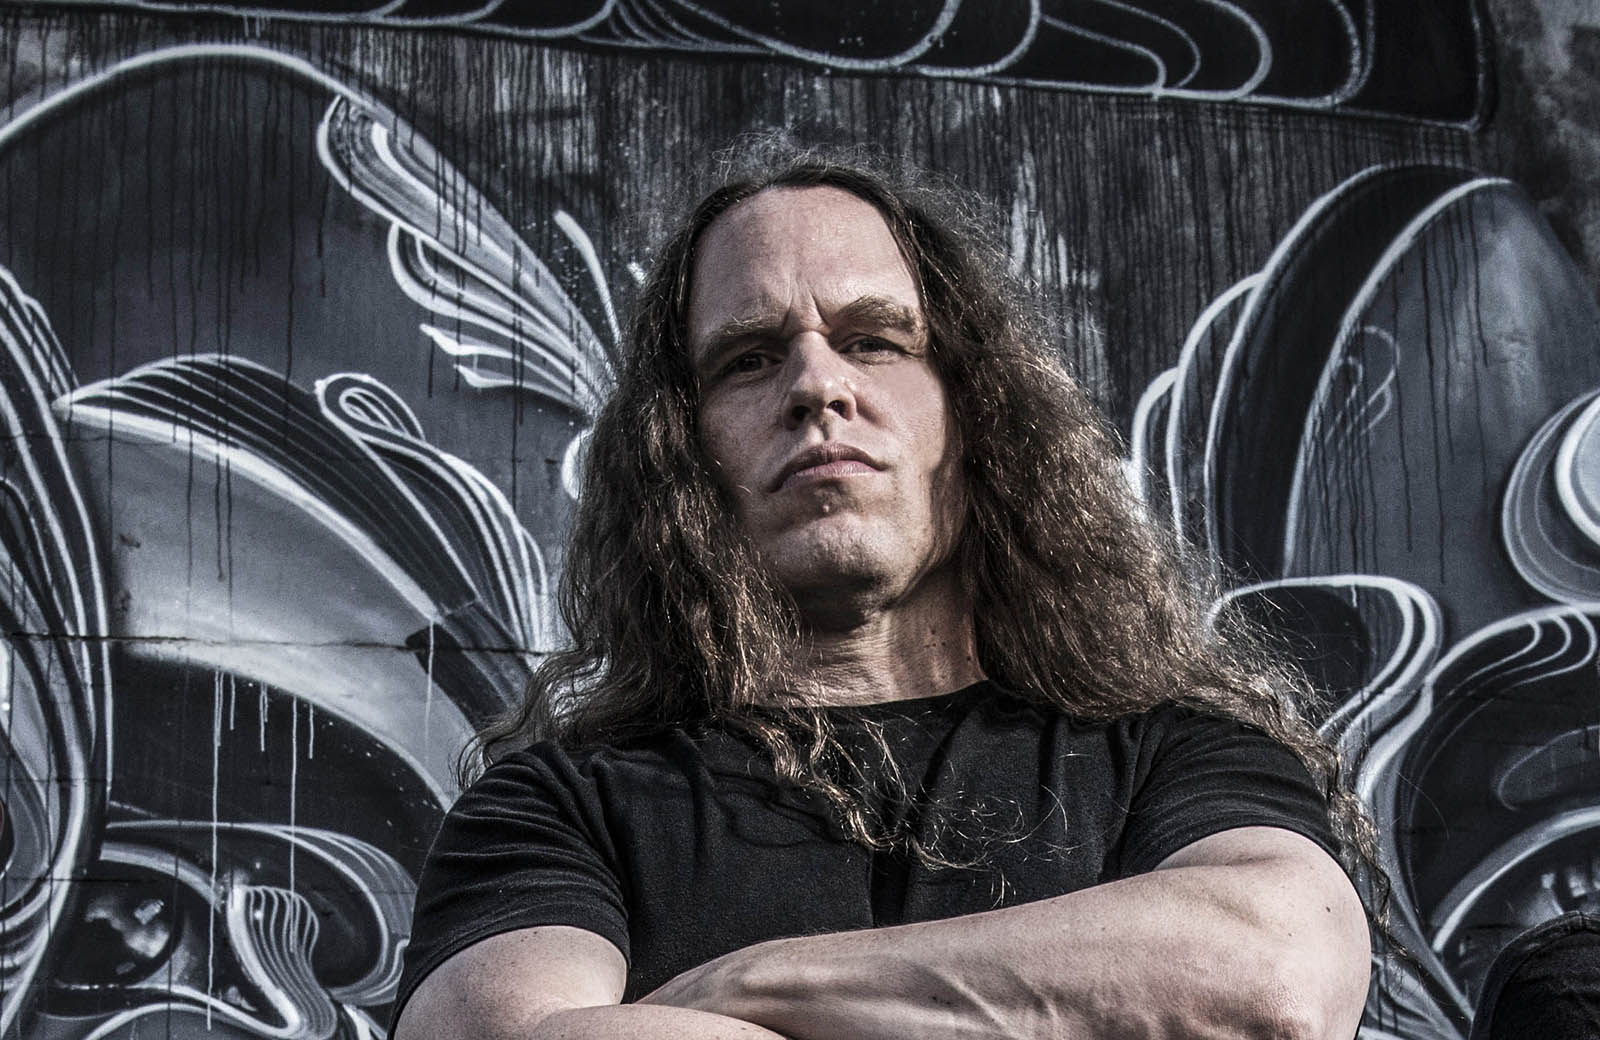 Hate Eternal's Erik Rutan to Fill in for Pat O'Brien in Cannibal Corpse